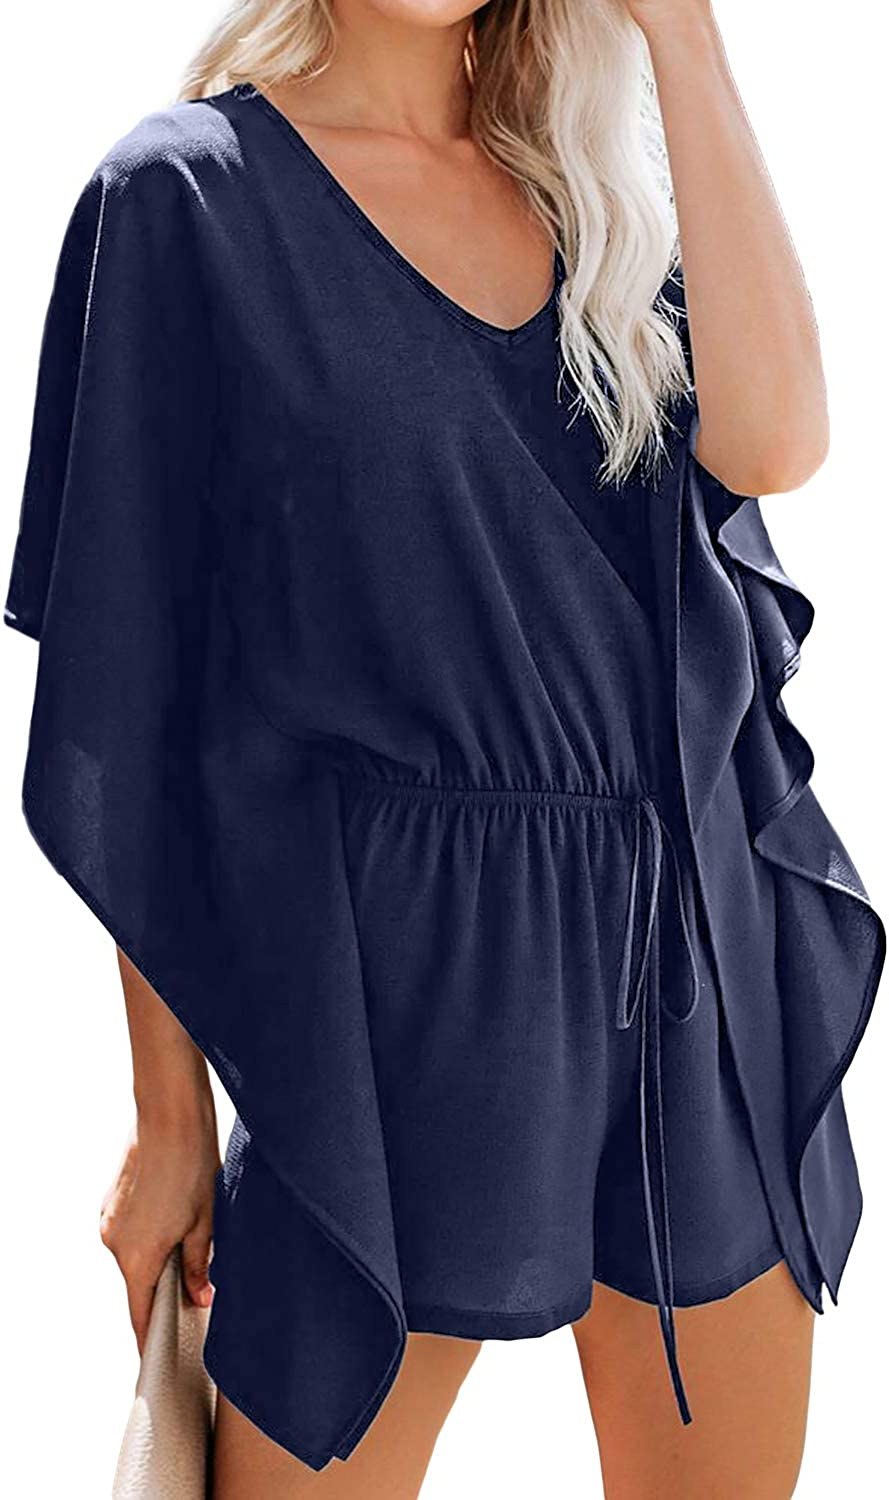 Financial sales sale Discount is also underway Uusollecy Womens Summer Casual Shorts Jumpsuits V Ruffle Neck Sl